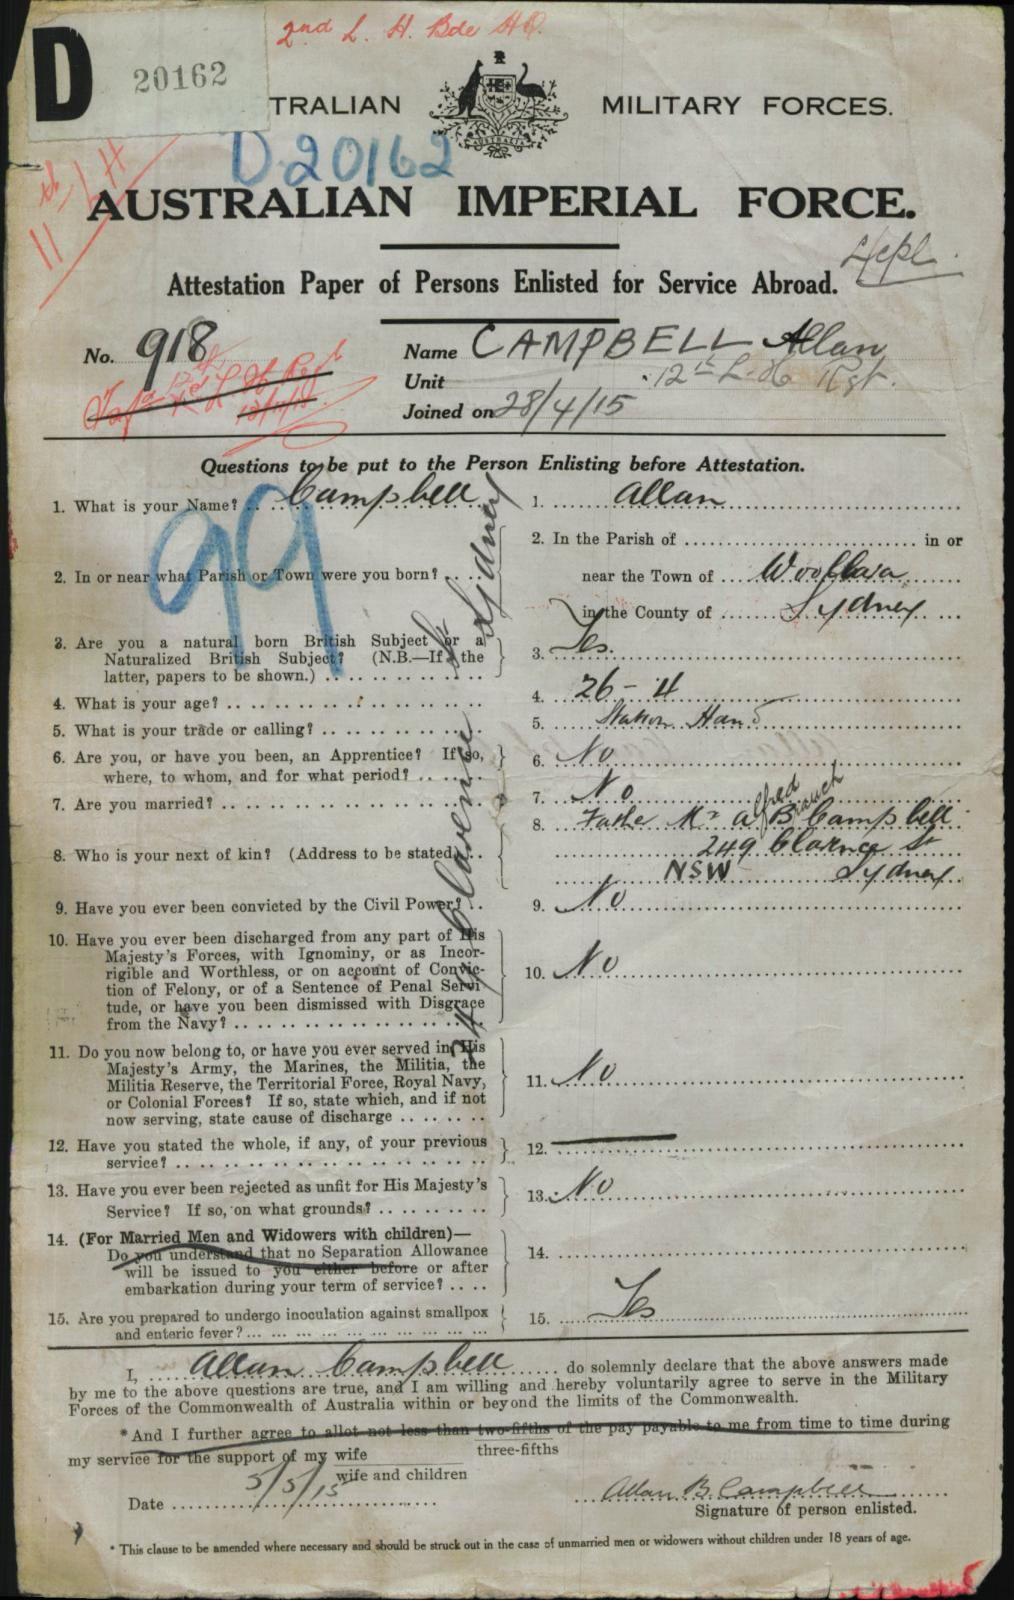 World War 1 Military Service Record - 918 Lance Corporal Allan Begbie Campbell